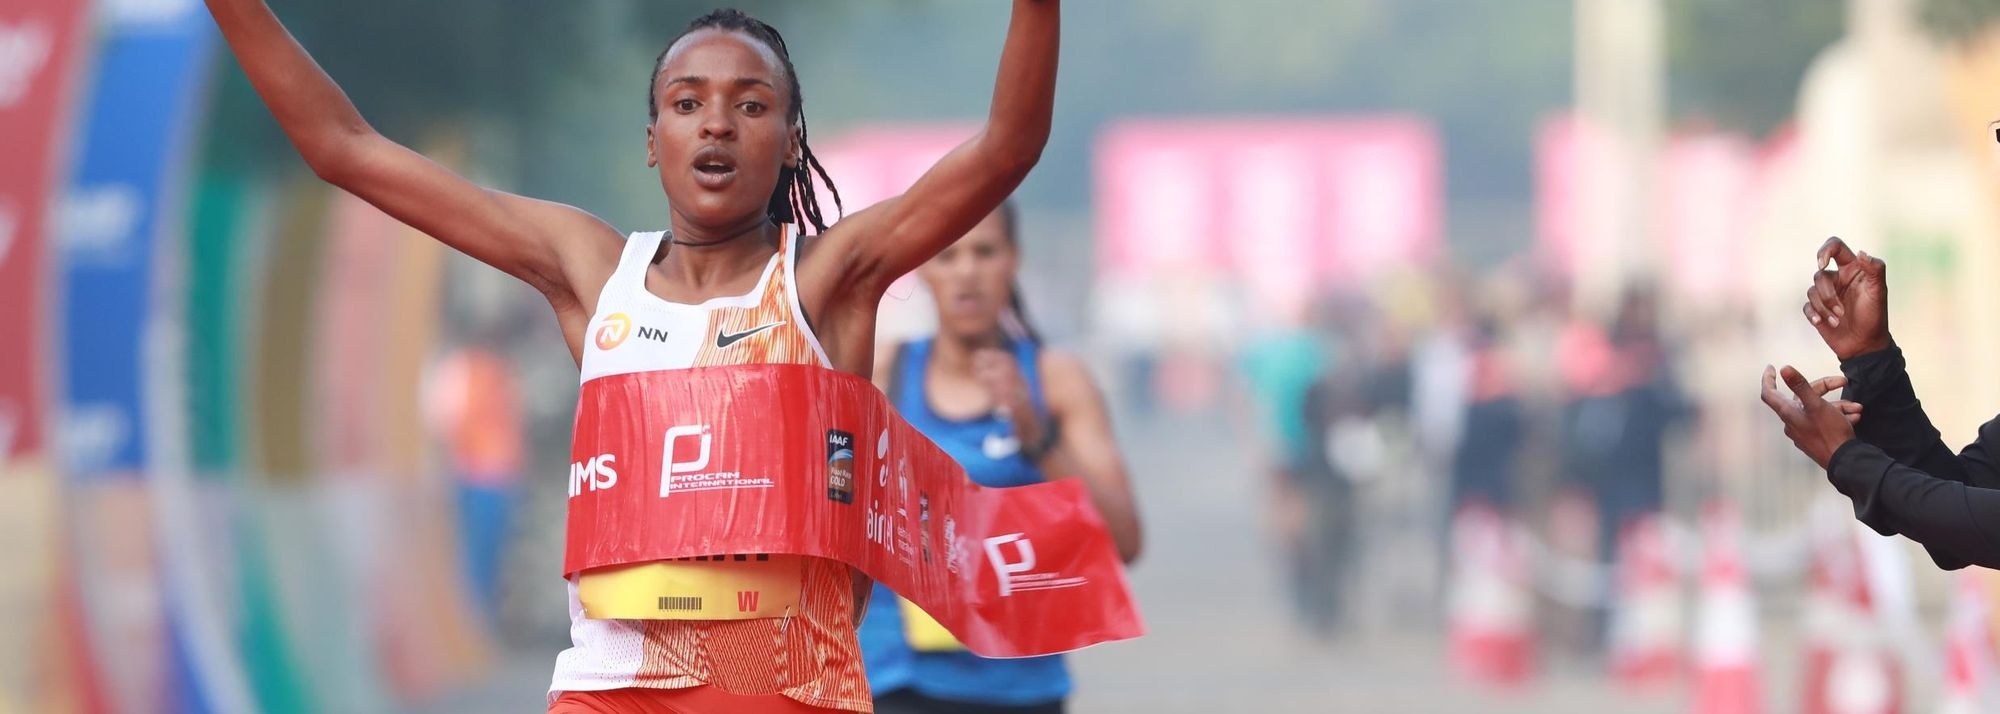 Defending champions Belihu and Gemechu targeting course records at Delhi Half Marathon